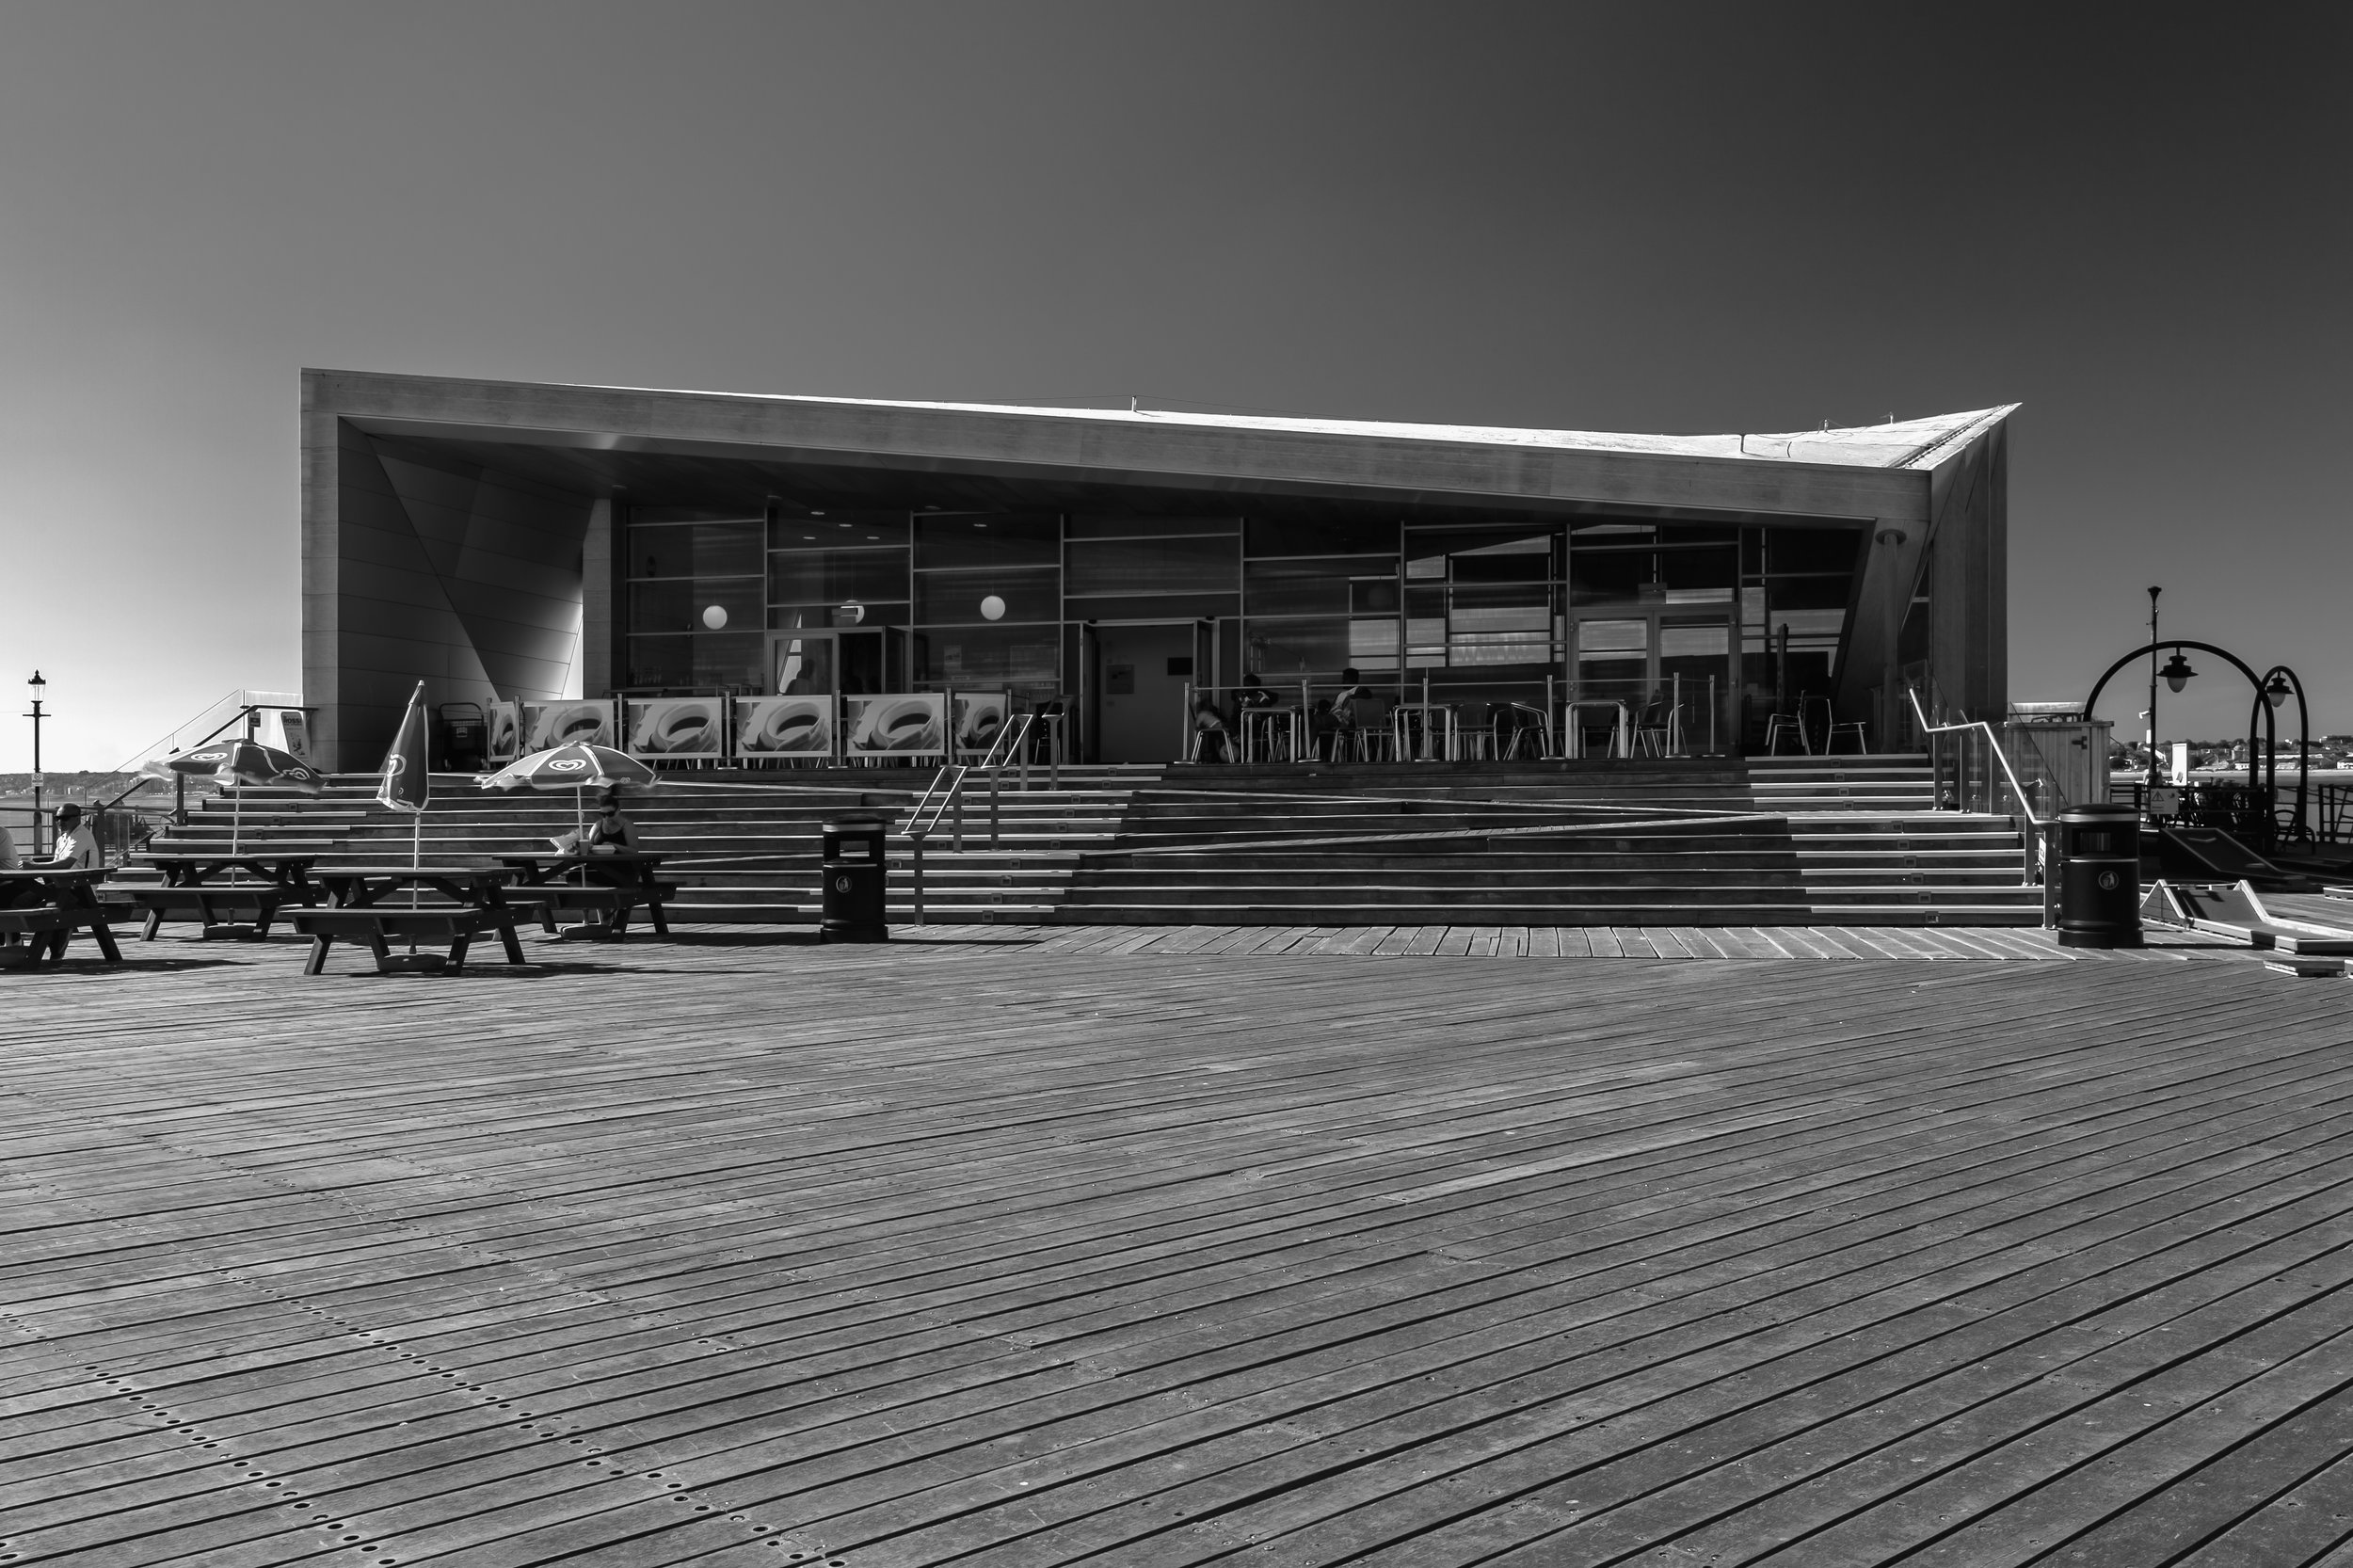 Southend Pier Cultural Centre, Southend-On-Sea, UK - ©DomePhotography 2018